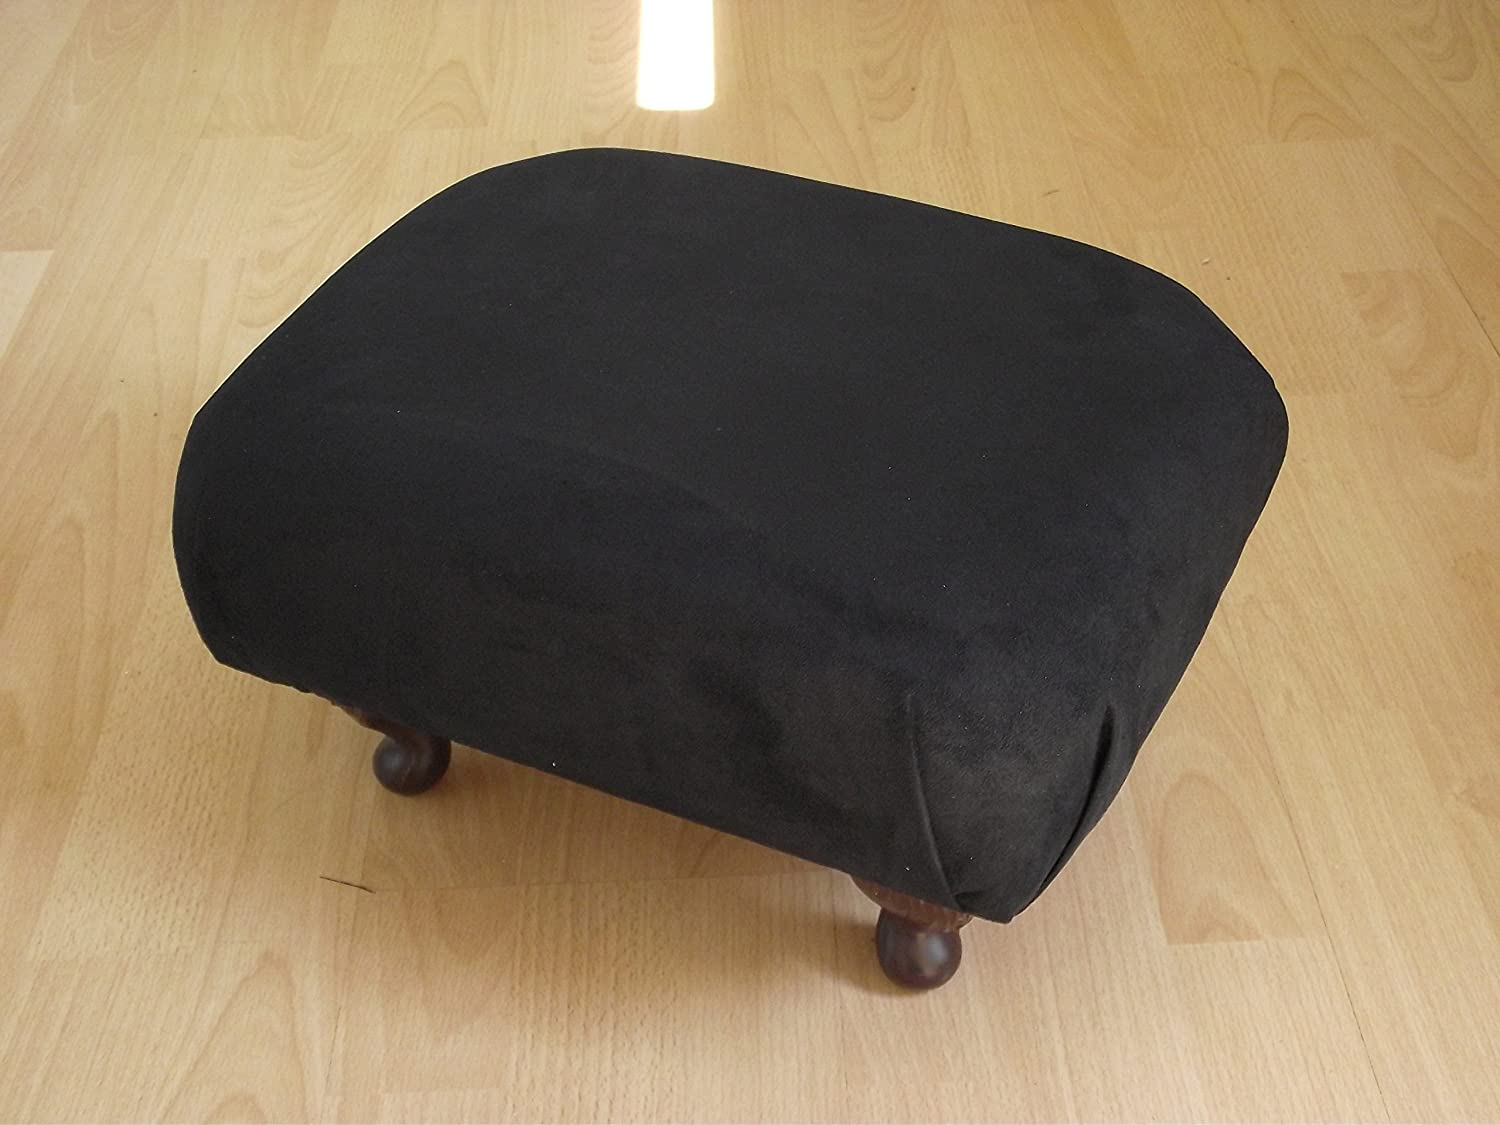 Superb black crushed velvet fabric small footstool silver chrome metal legs new